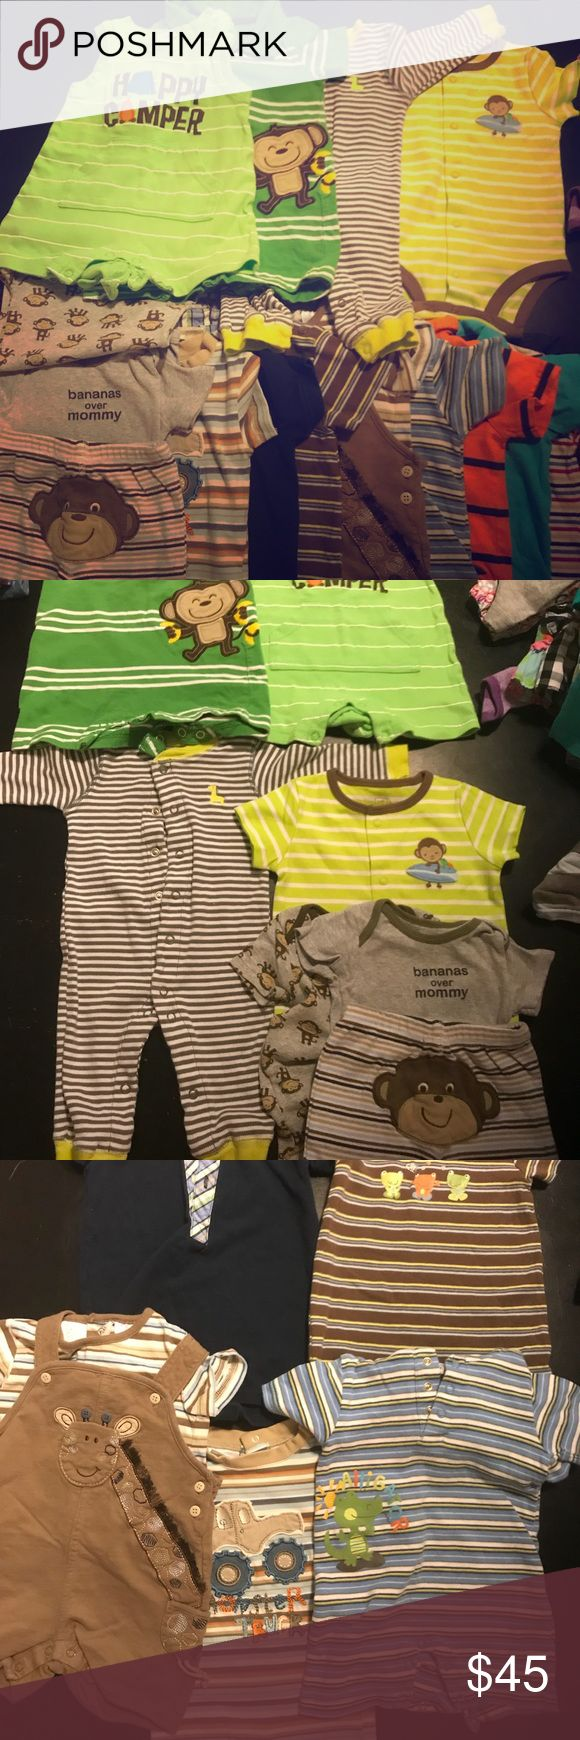 Lot of baby boys clothing 6-12 months Photo 2 six month Carter's rompers, photo 3 6 to 9 months rompers mixed brands, Photo 4 nine month rompers, photo 5 12 month onesie-14 outfits total Matching Sets